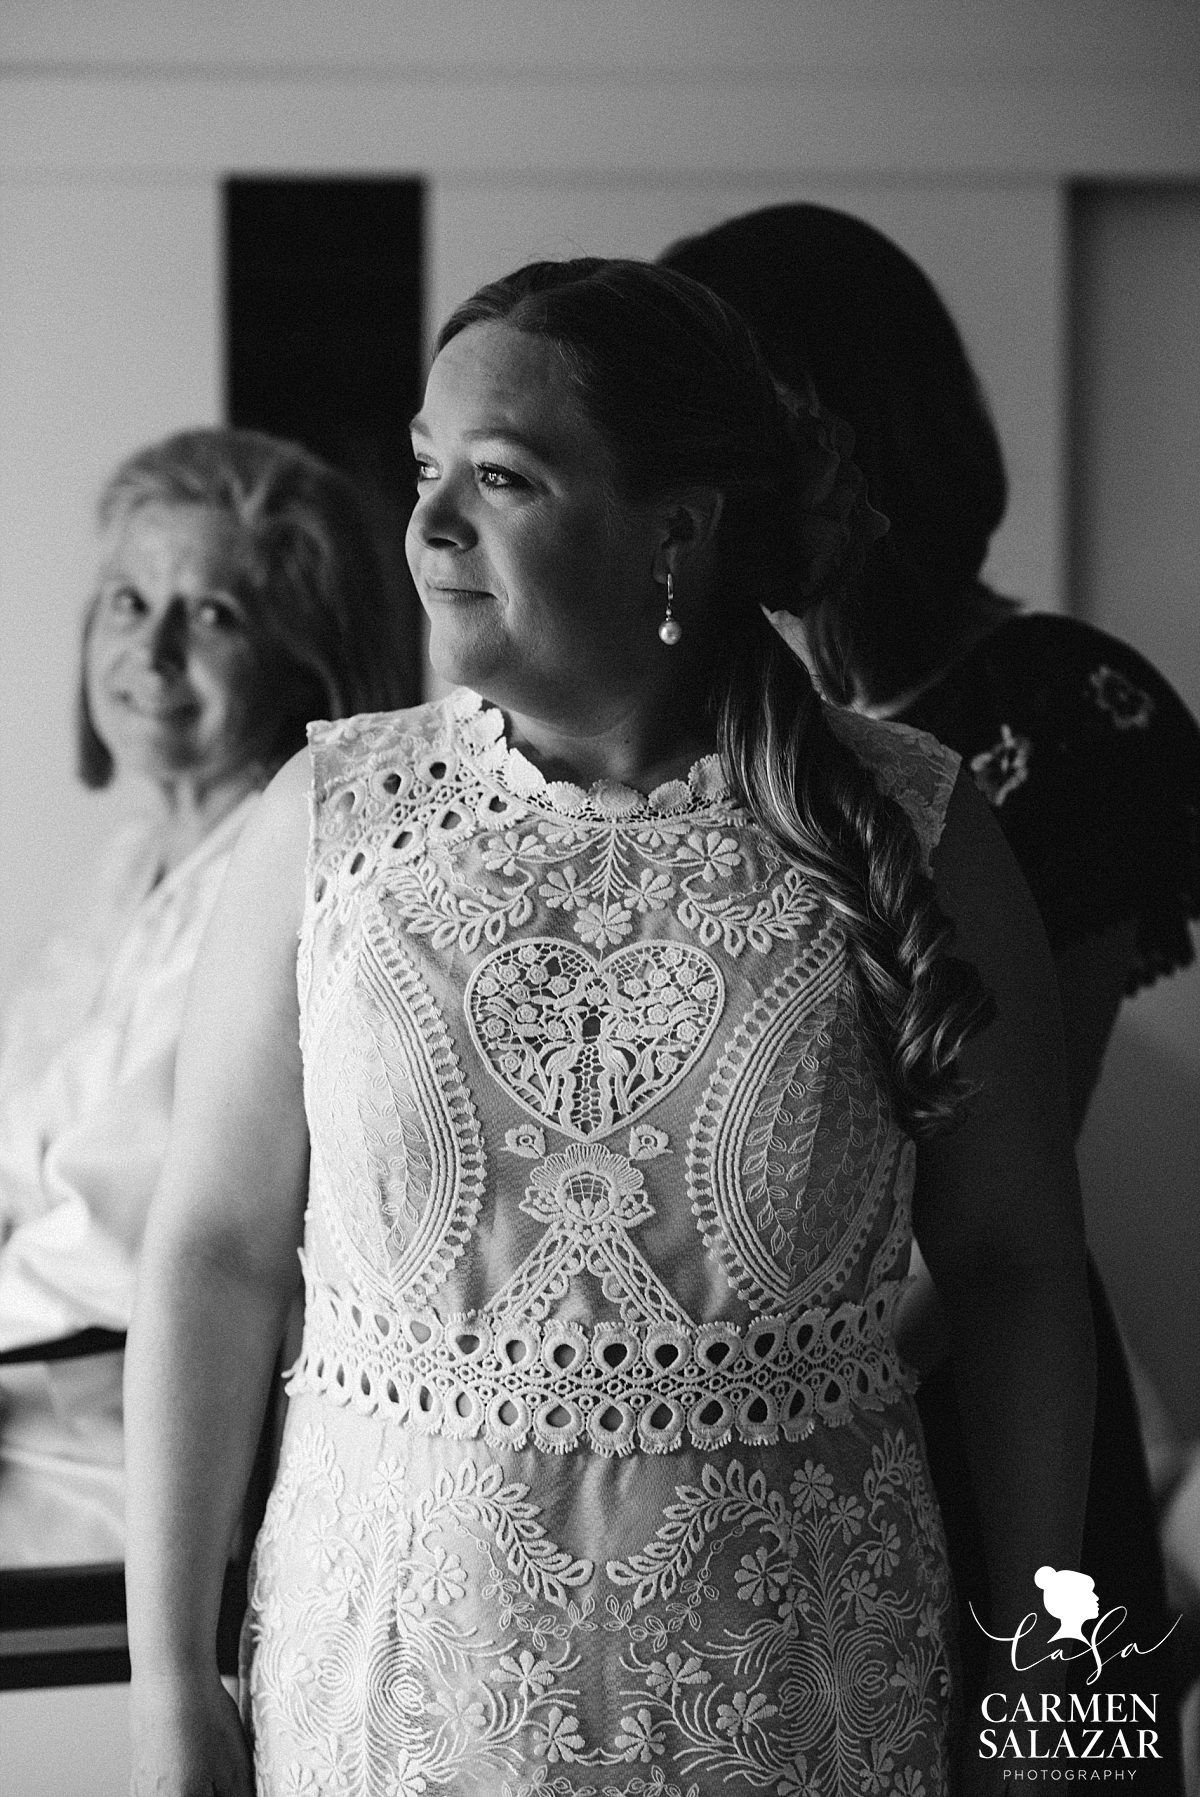 Bride wearing Anthropologie wedding dress - Carmen Salazar